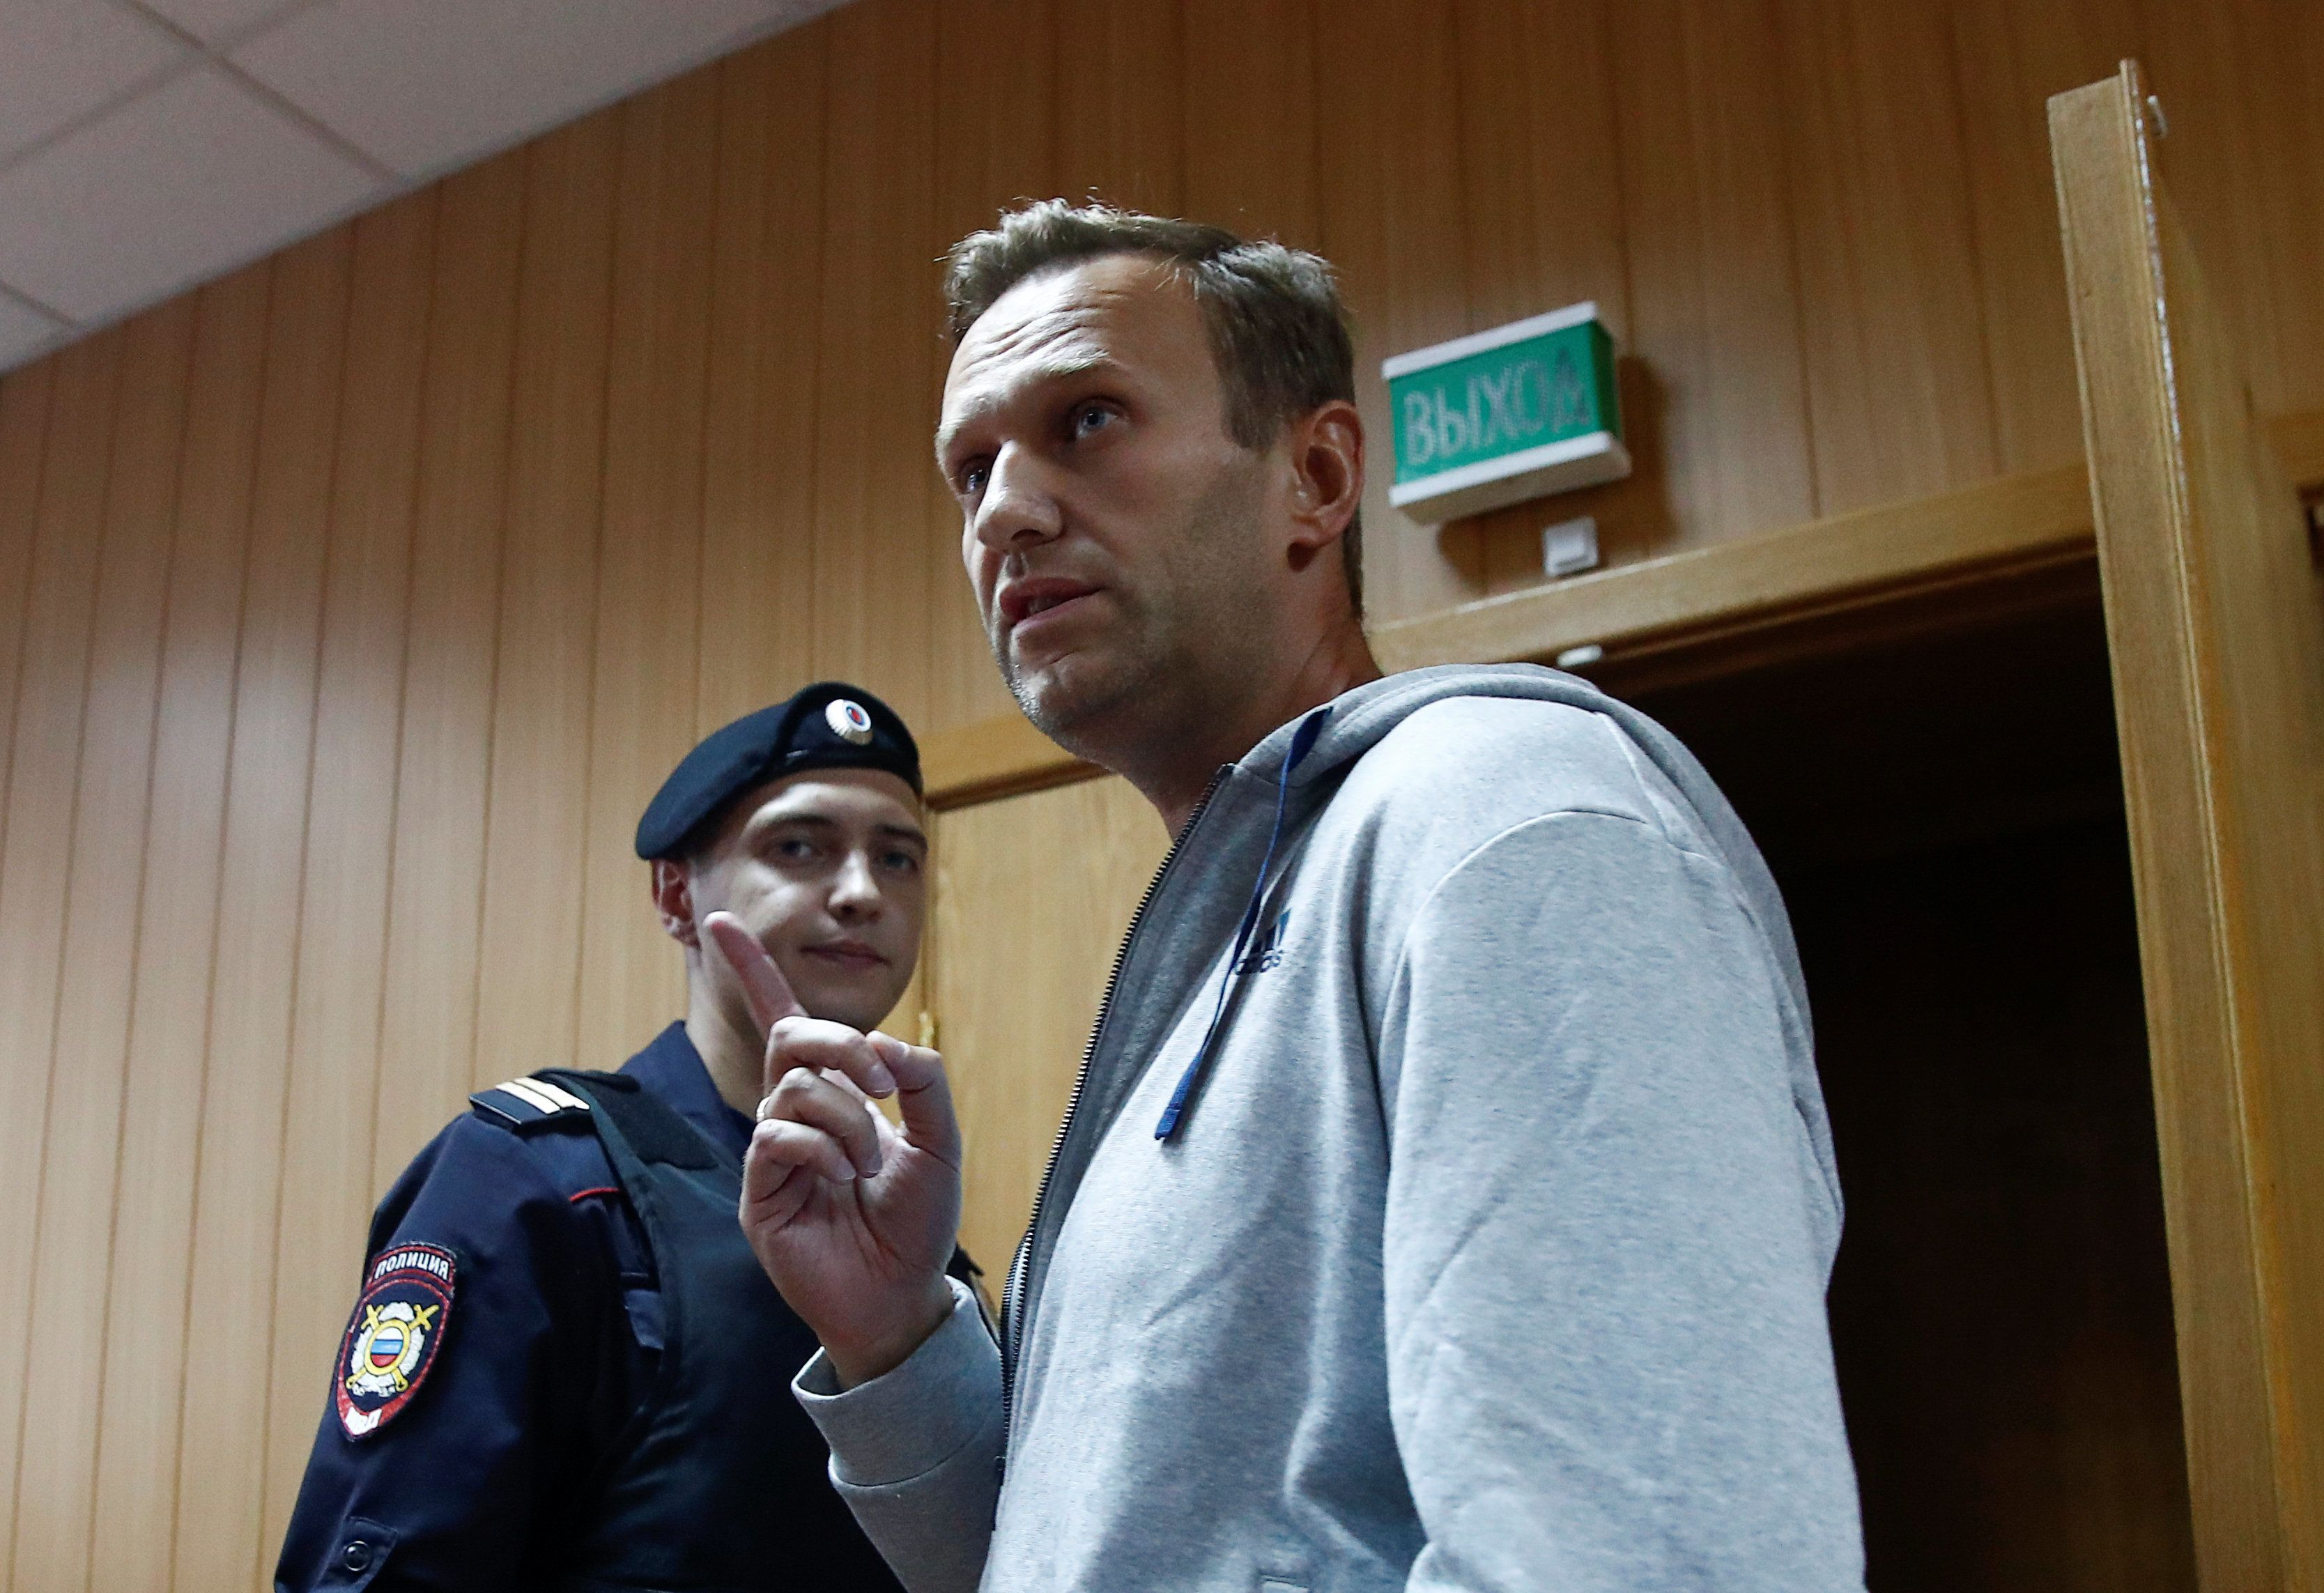 Putin Critic Alexei Navalny Released From Prison, Re-Arrested 'Seconds' Later